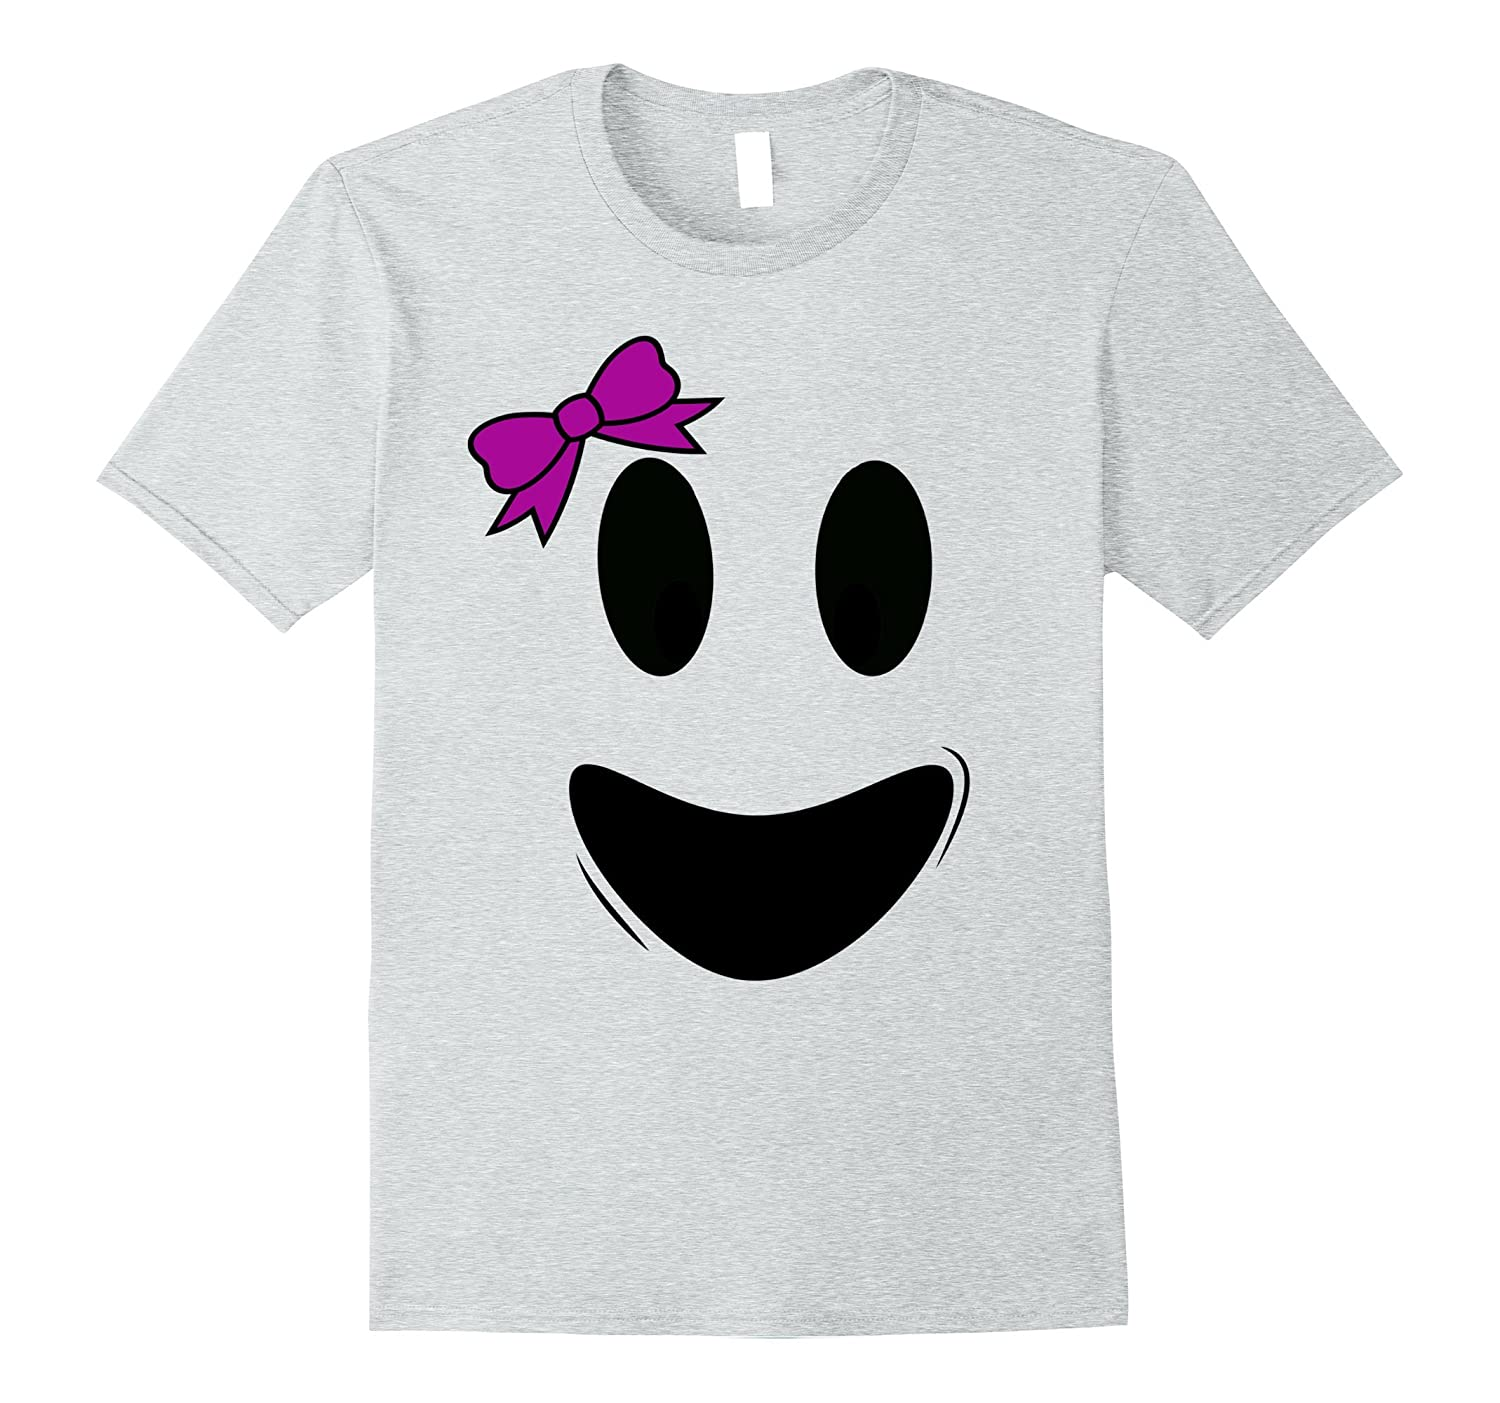 Cute Ghoul Face Ghost Tee Shirt Costume for Girls-TJ